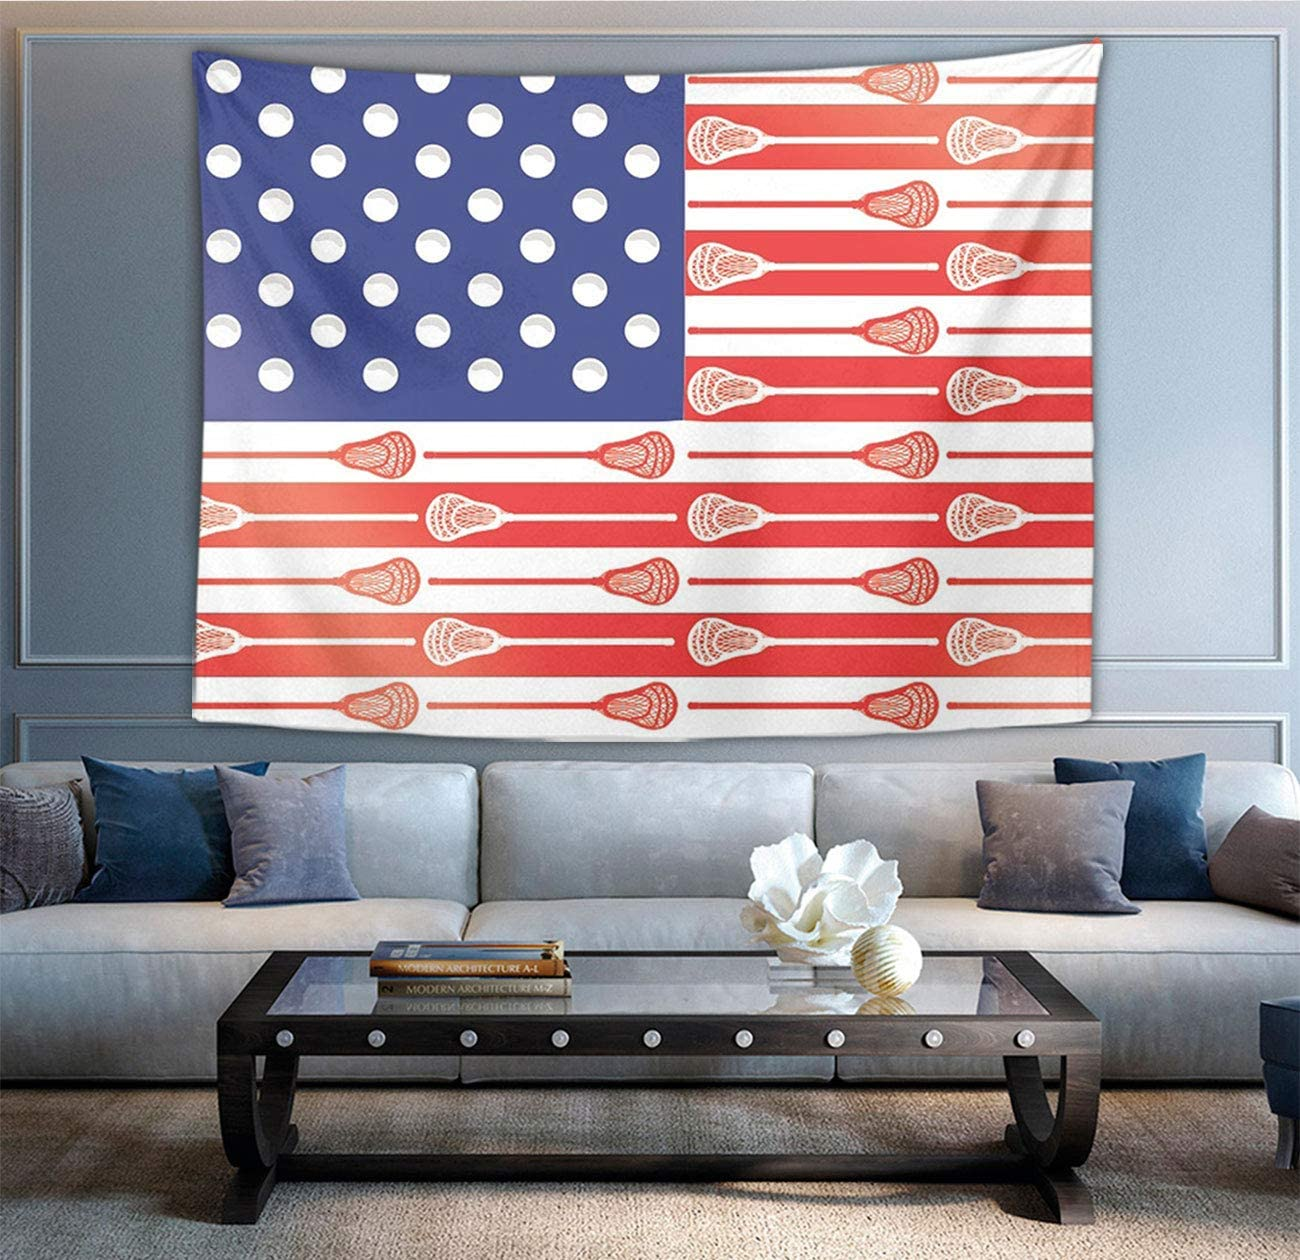 "NiYoung Great Gift - Wall Blanket Wall Art American USA Lacrosse Sticks Flag Tapestry Wall Tapestry Wall Art Decoration Home Decor for Bedroom, Dorm, College, Living Room 40"" X 60"""